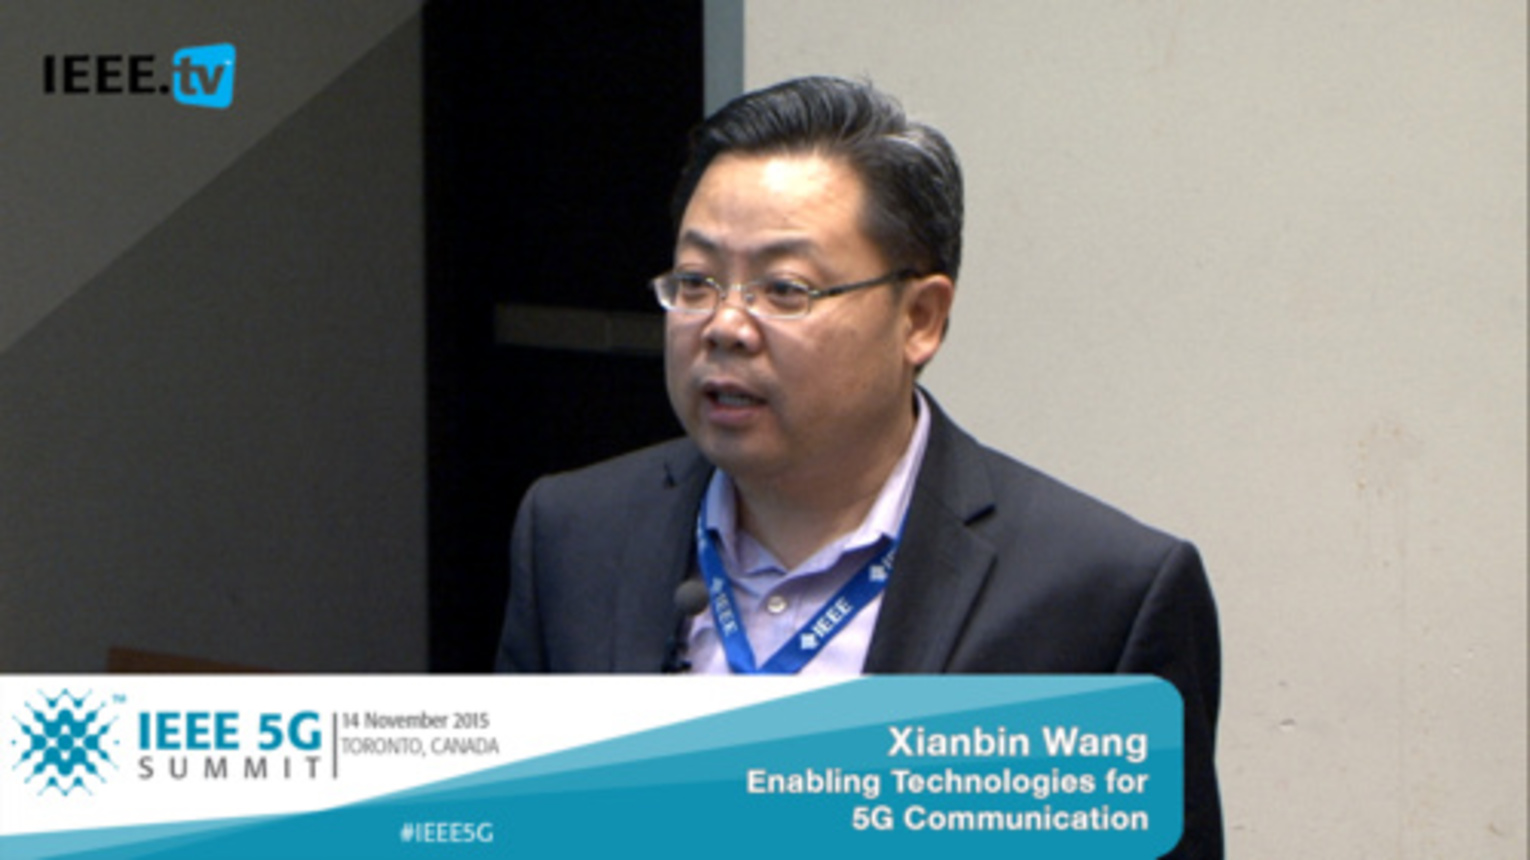 Toronto 5G Summit - 2015 - Xianbin Wang - Enabling Technologies for Highly Efficient and Cost-Effective 5G Communications